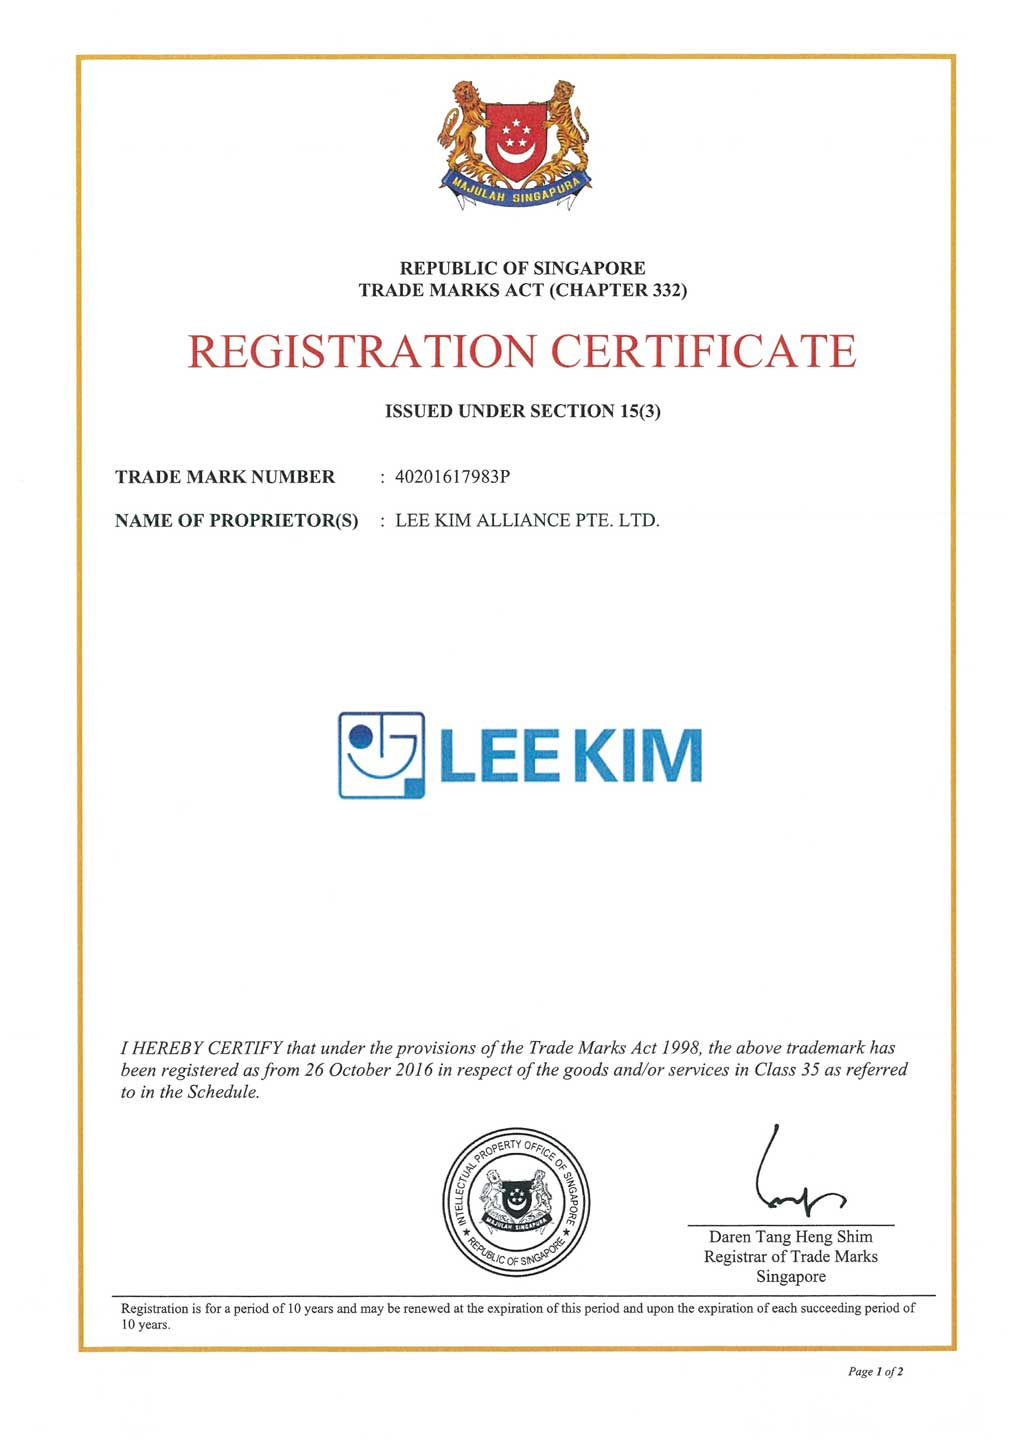 TRADEMARK-CERTIFICATE_LEE_KIM_ALLIANCE.jpg